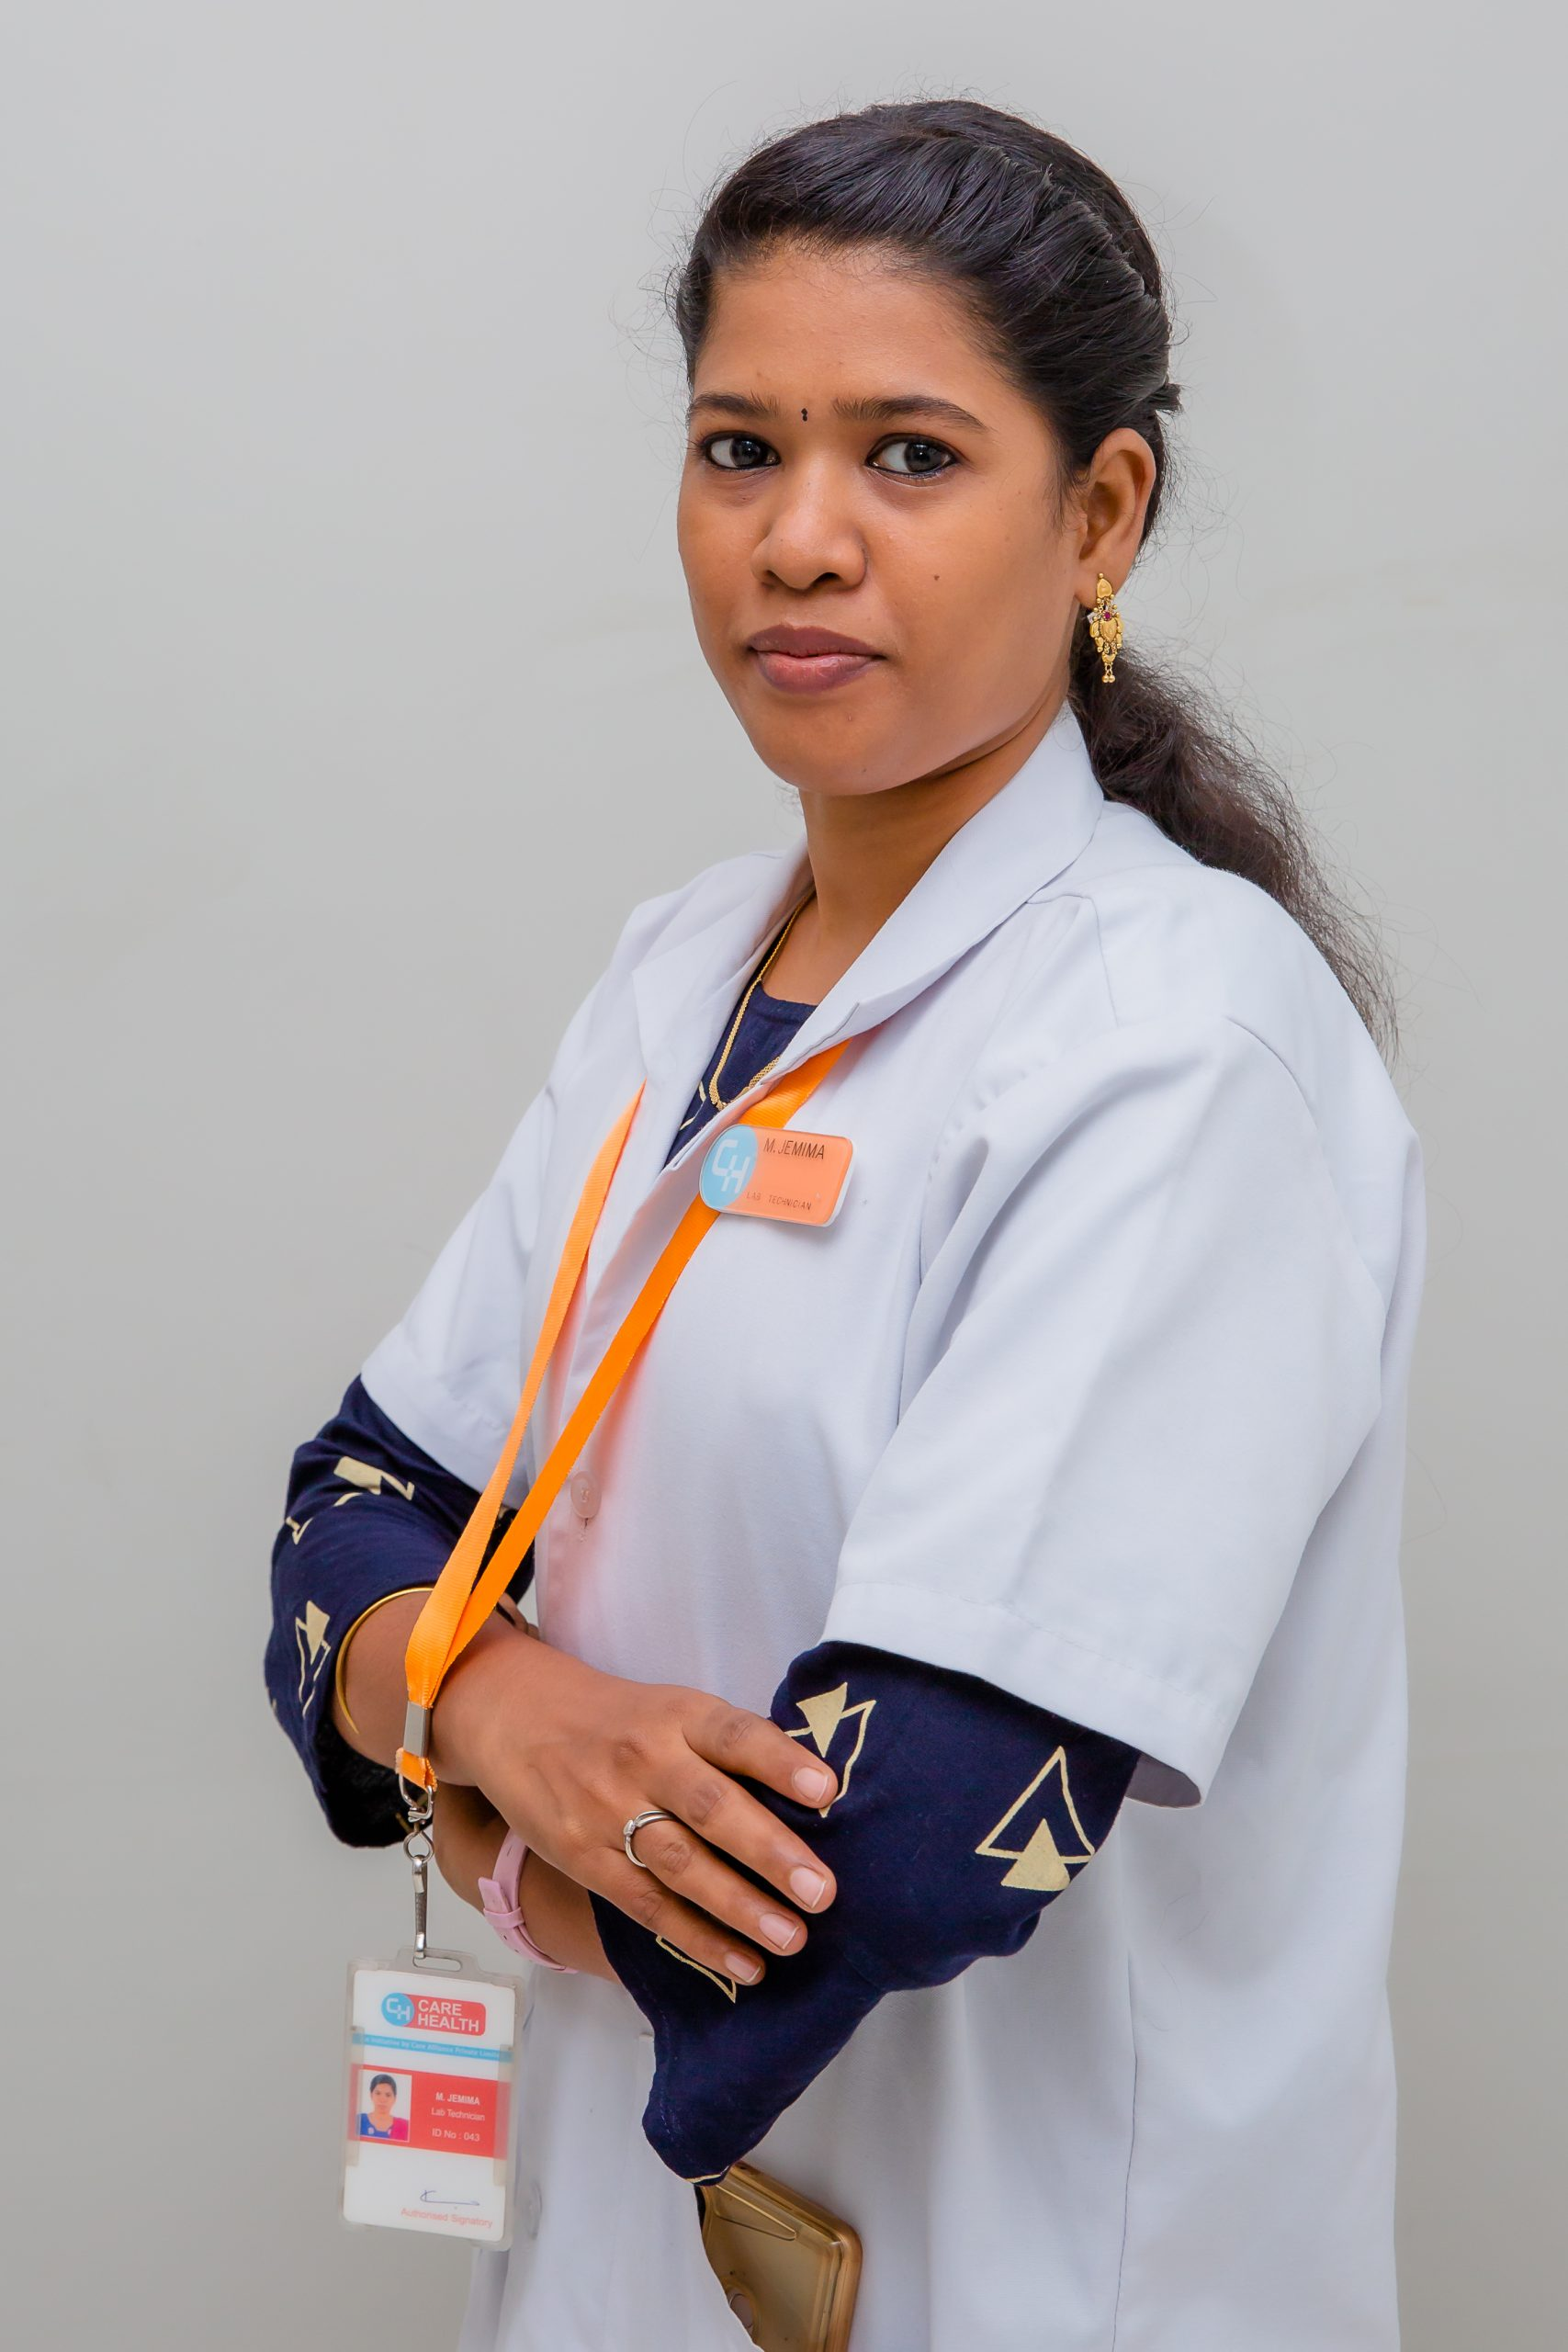 Female lab technician with labcoat and ID badge